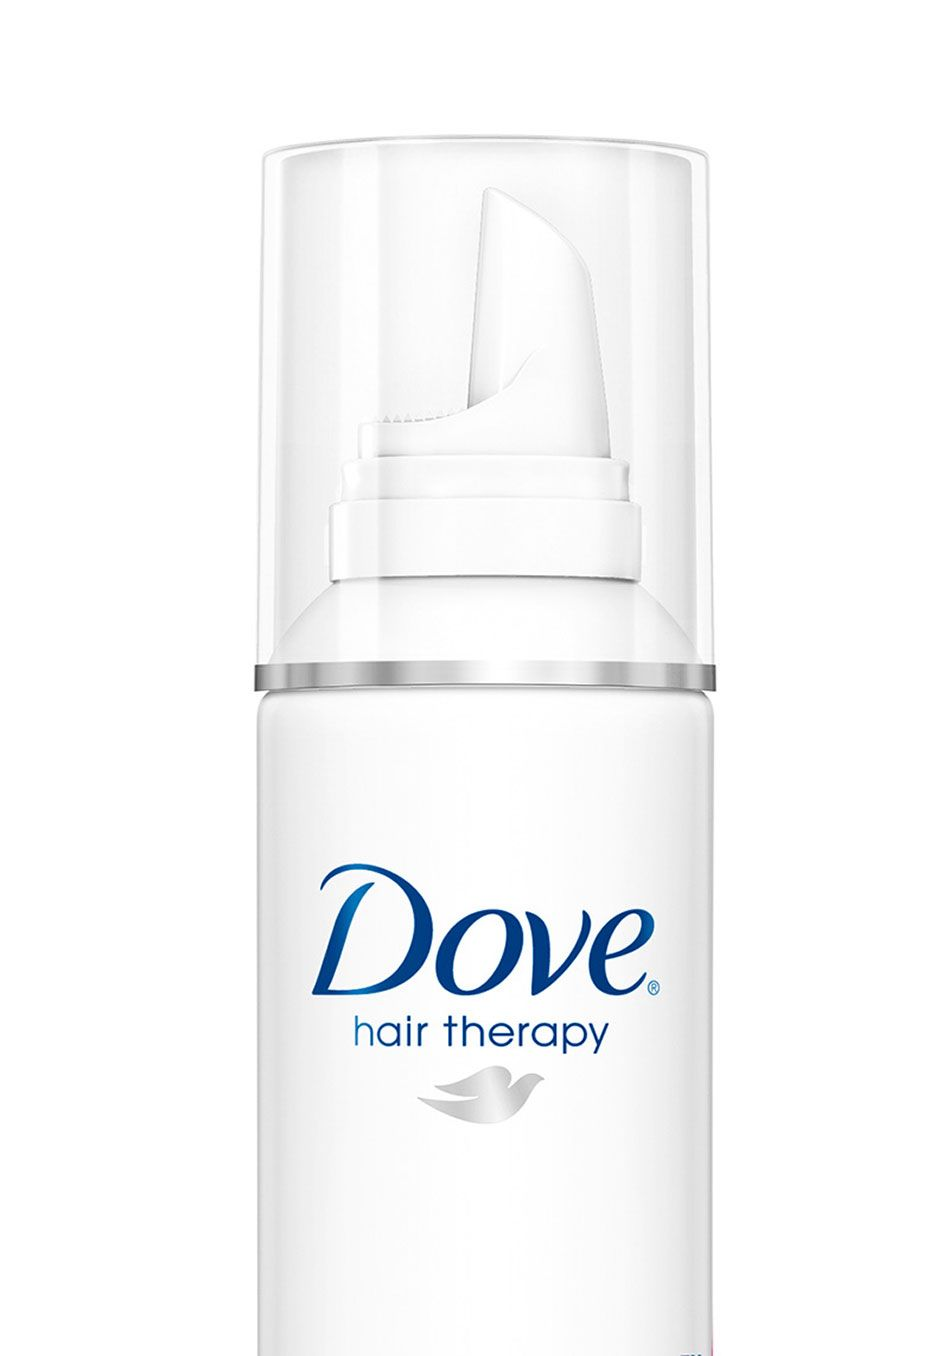 Dove Style Care Nourishing Amplifier Mousse Mousse Hair Therapy Doves